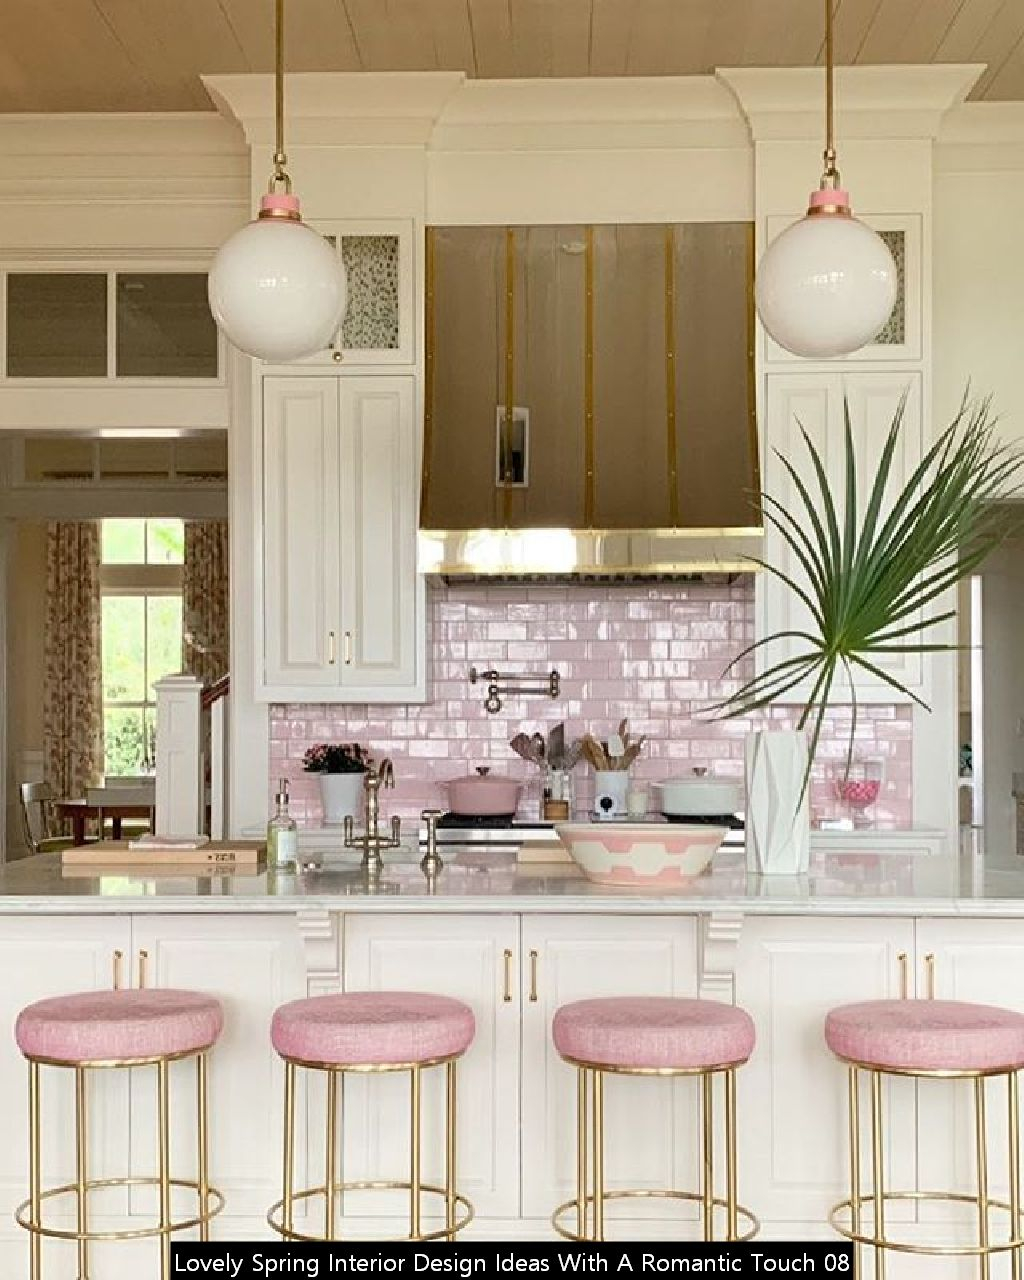 Lovely Spring Interior Design Ideas With A Romantic Touch 08